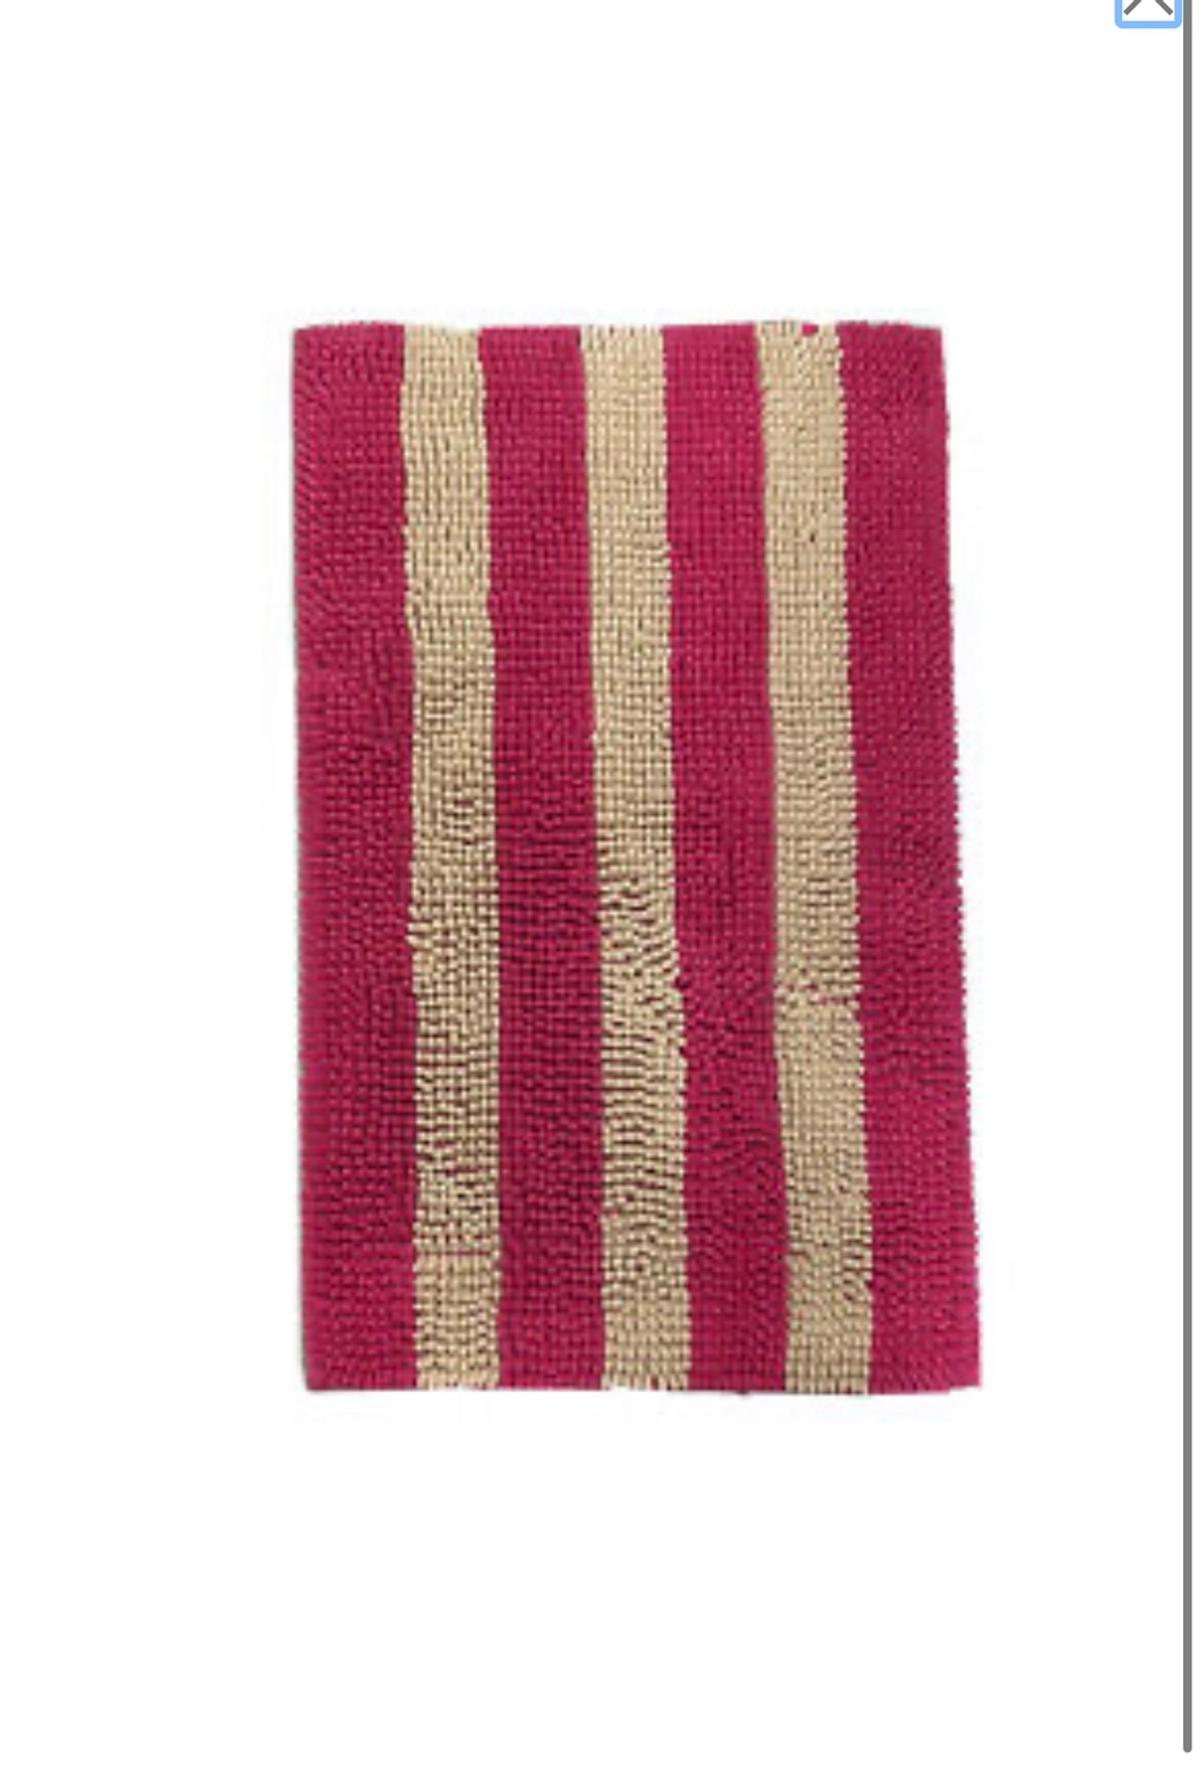 Two Tone Stripe Shaggy Loop Rug 50x80cms In E2 Hamlets For 10 00 For Sale Shpock